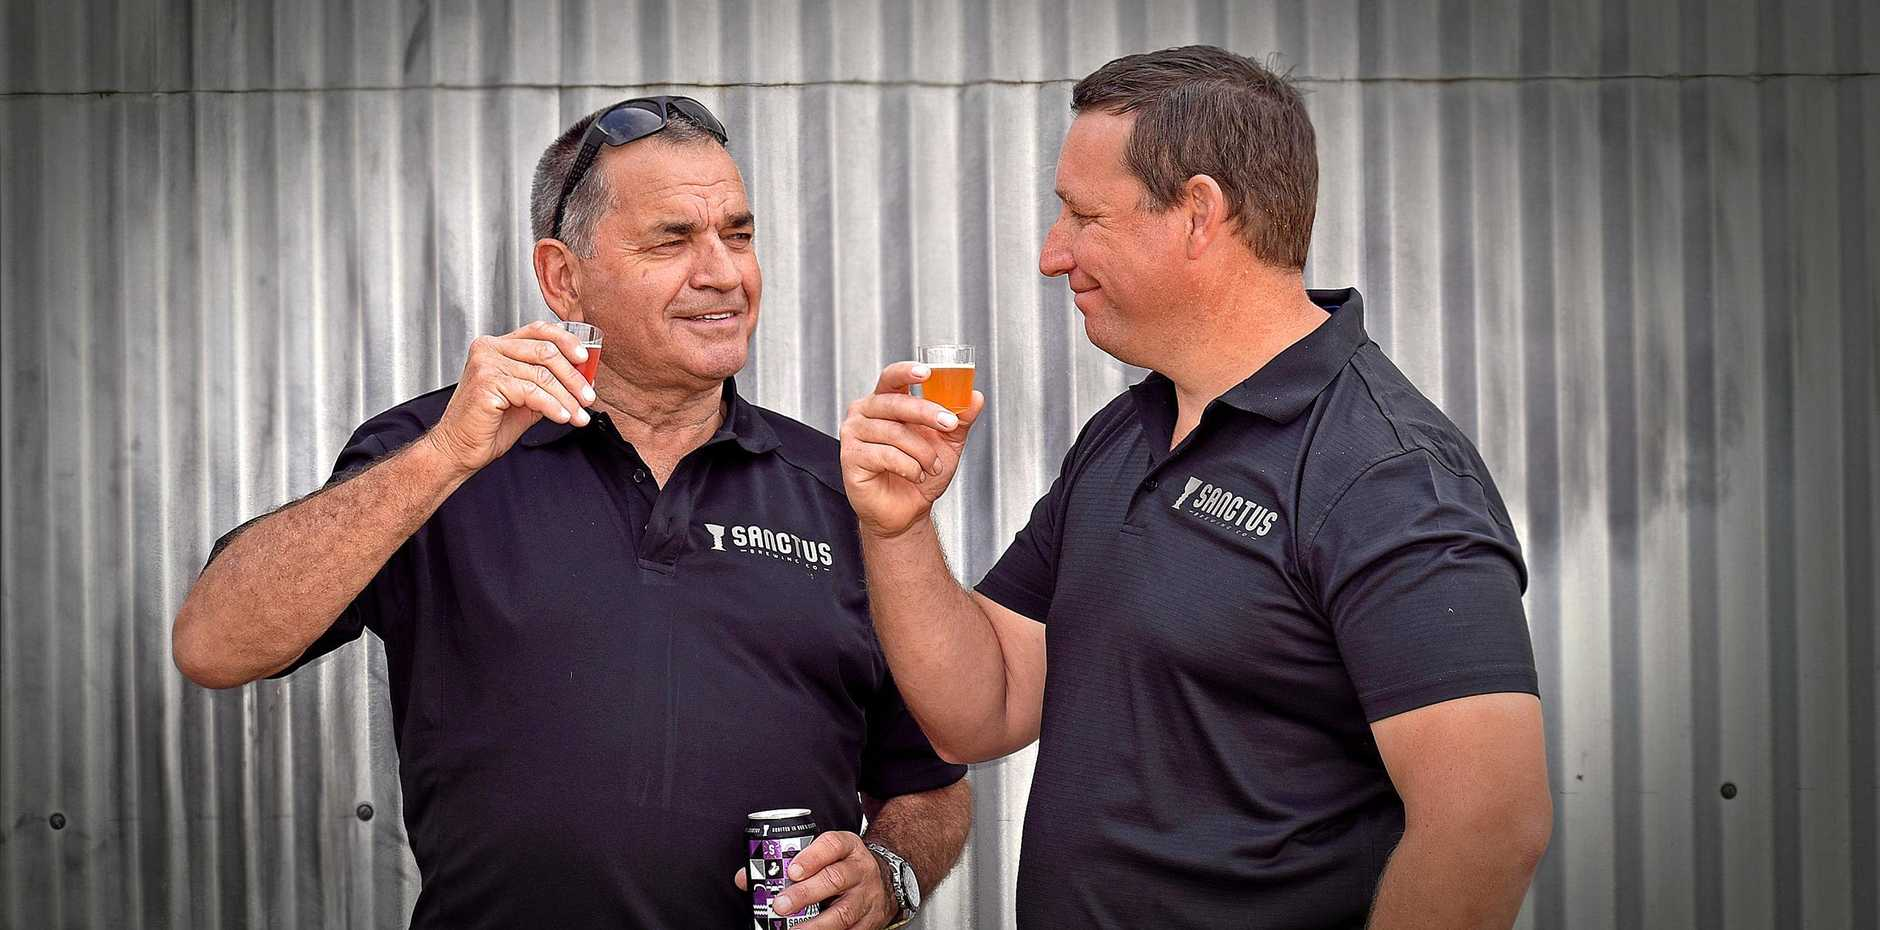 Steve Newton and Banjo Hillier from Sanctus Brewing Company enjoy a taste of their latest brew while at the 2019 Gate to Plate in Grafton on Sunday.